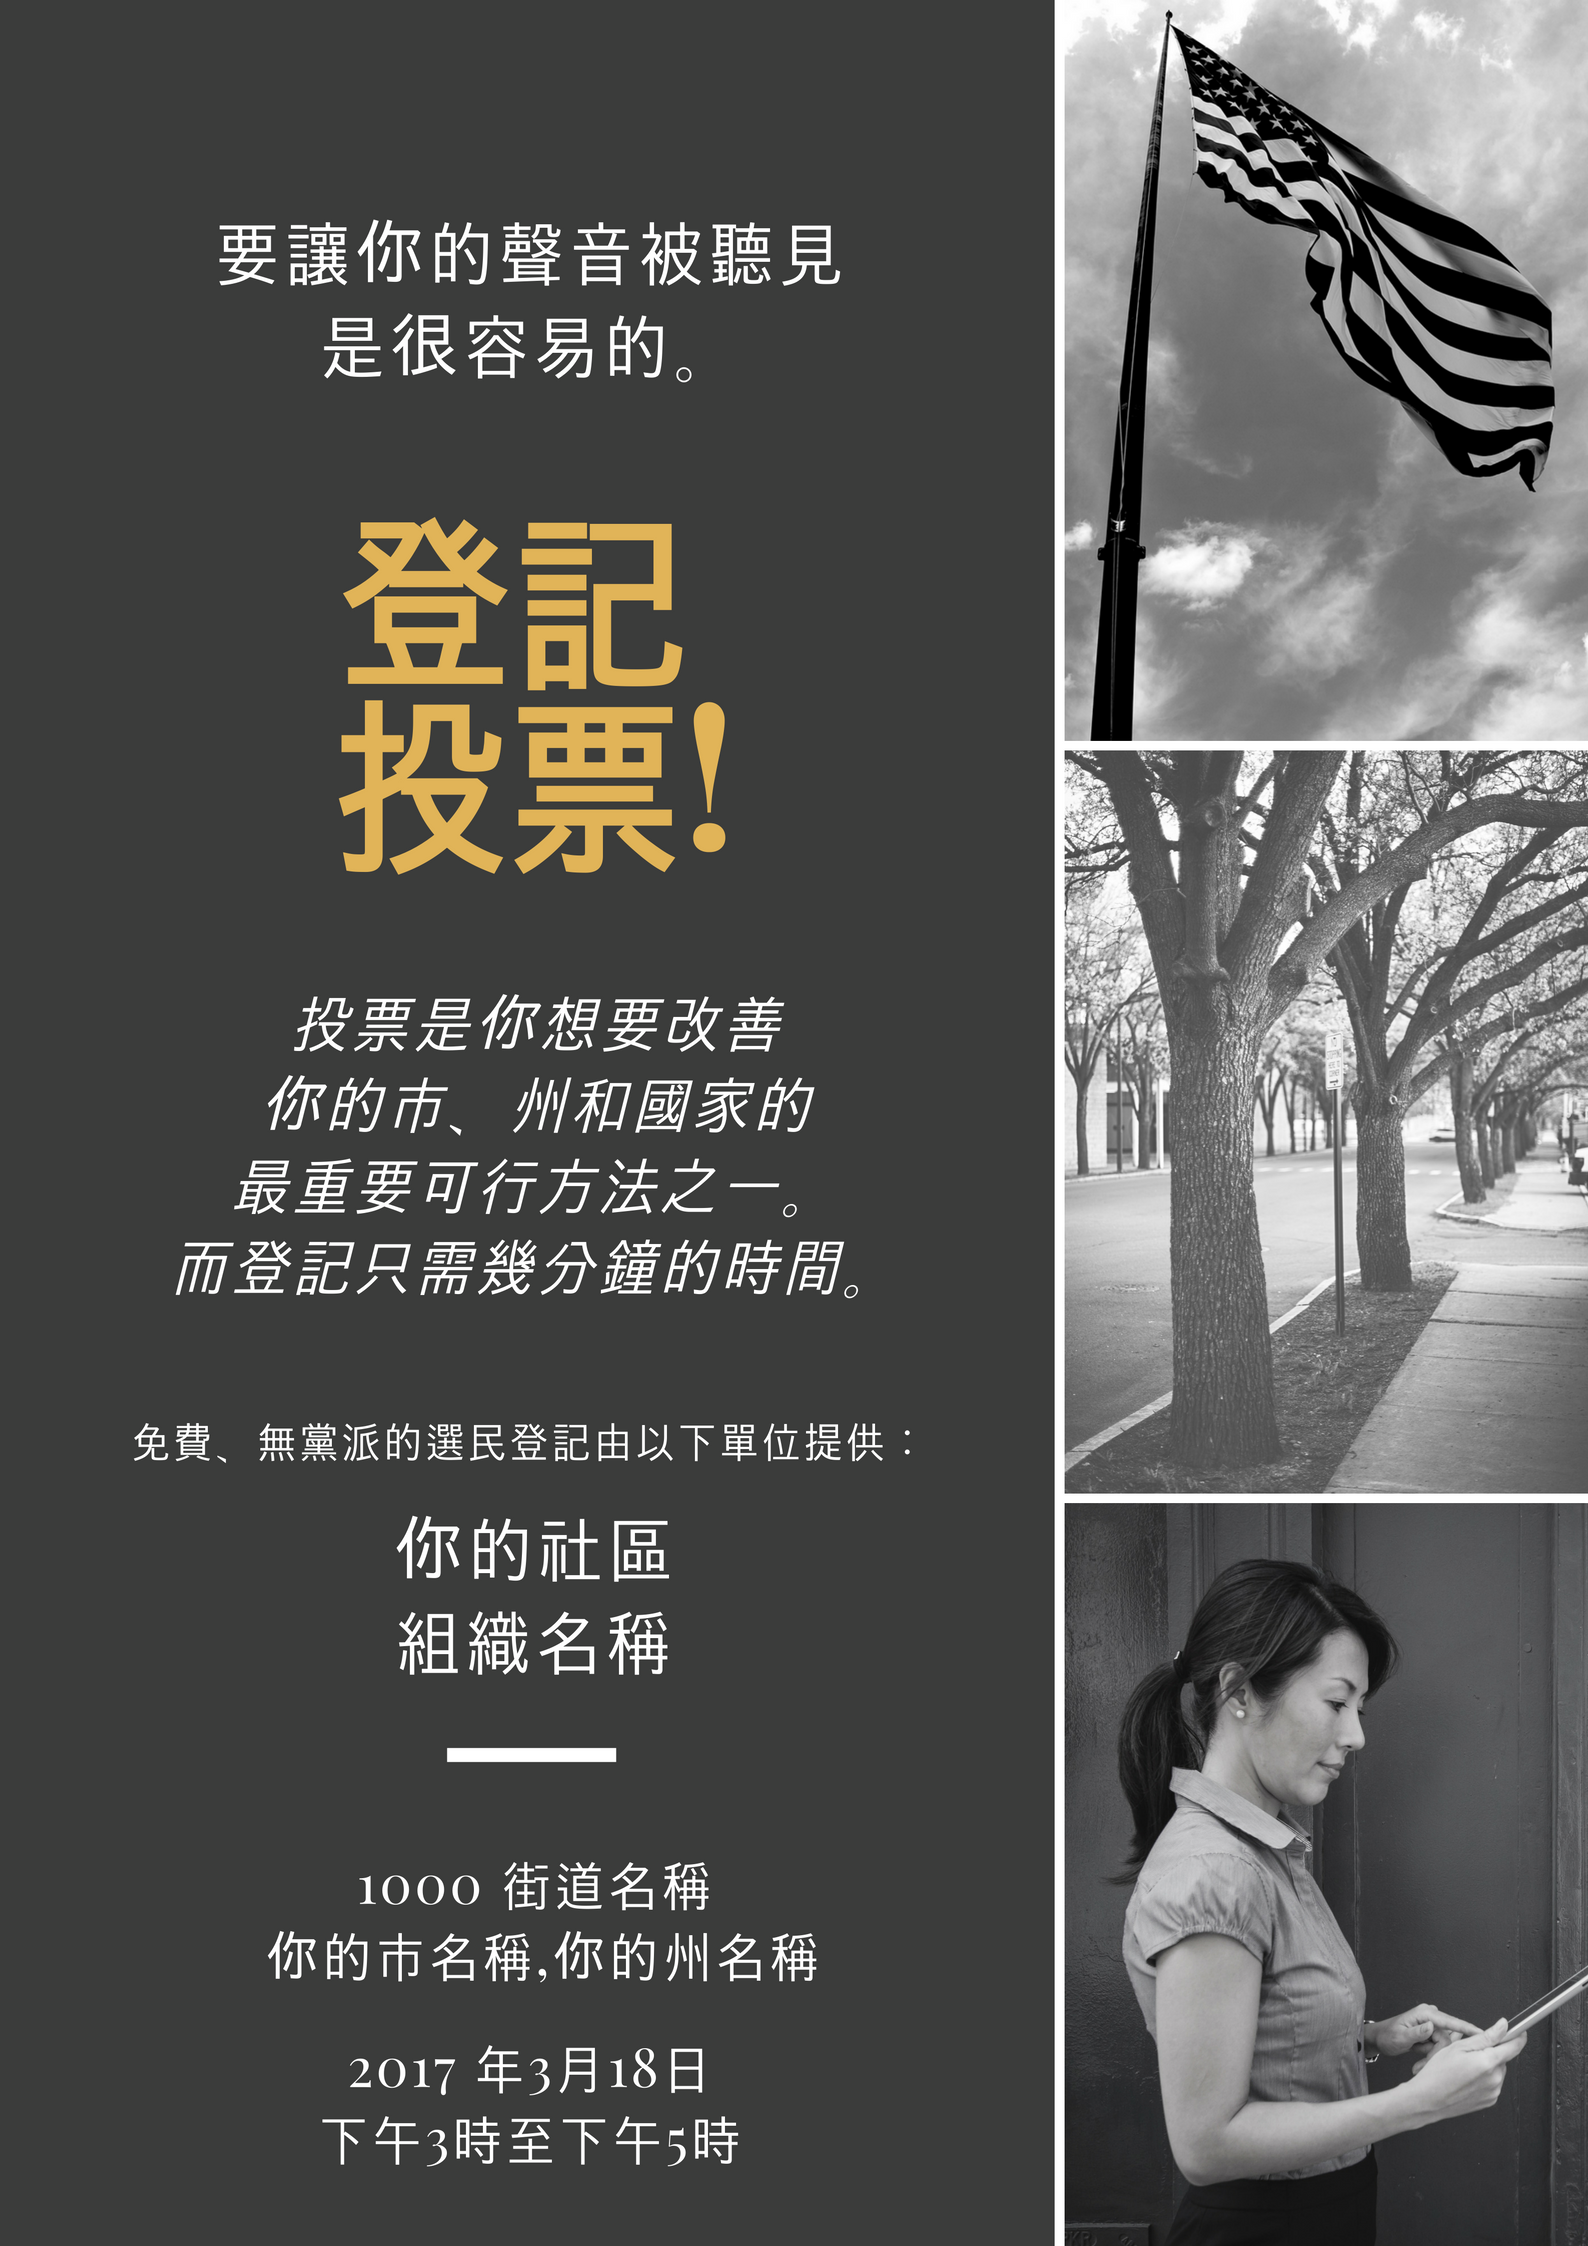 Black and white photo poster in Chinese